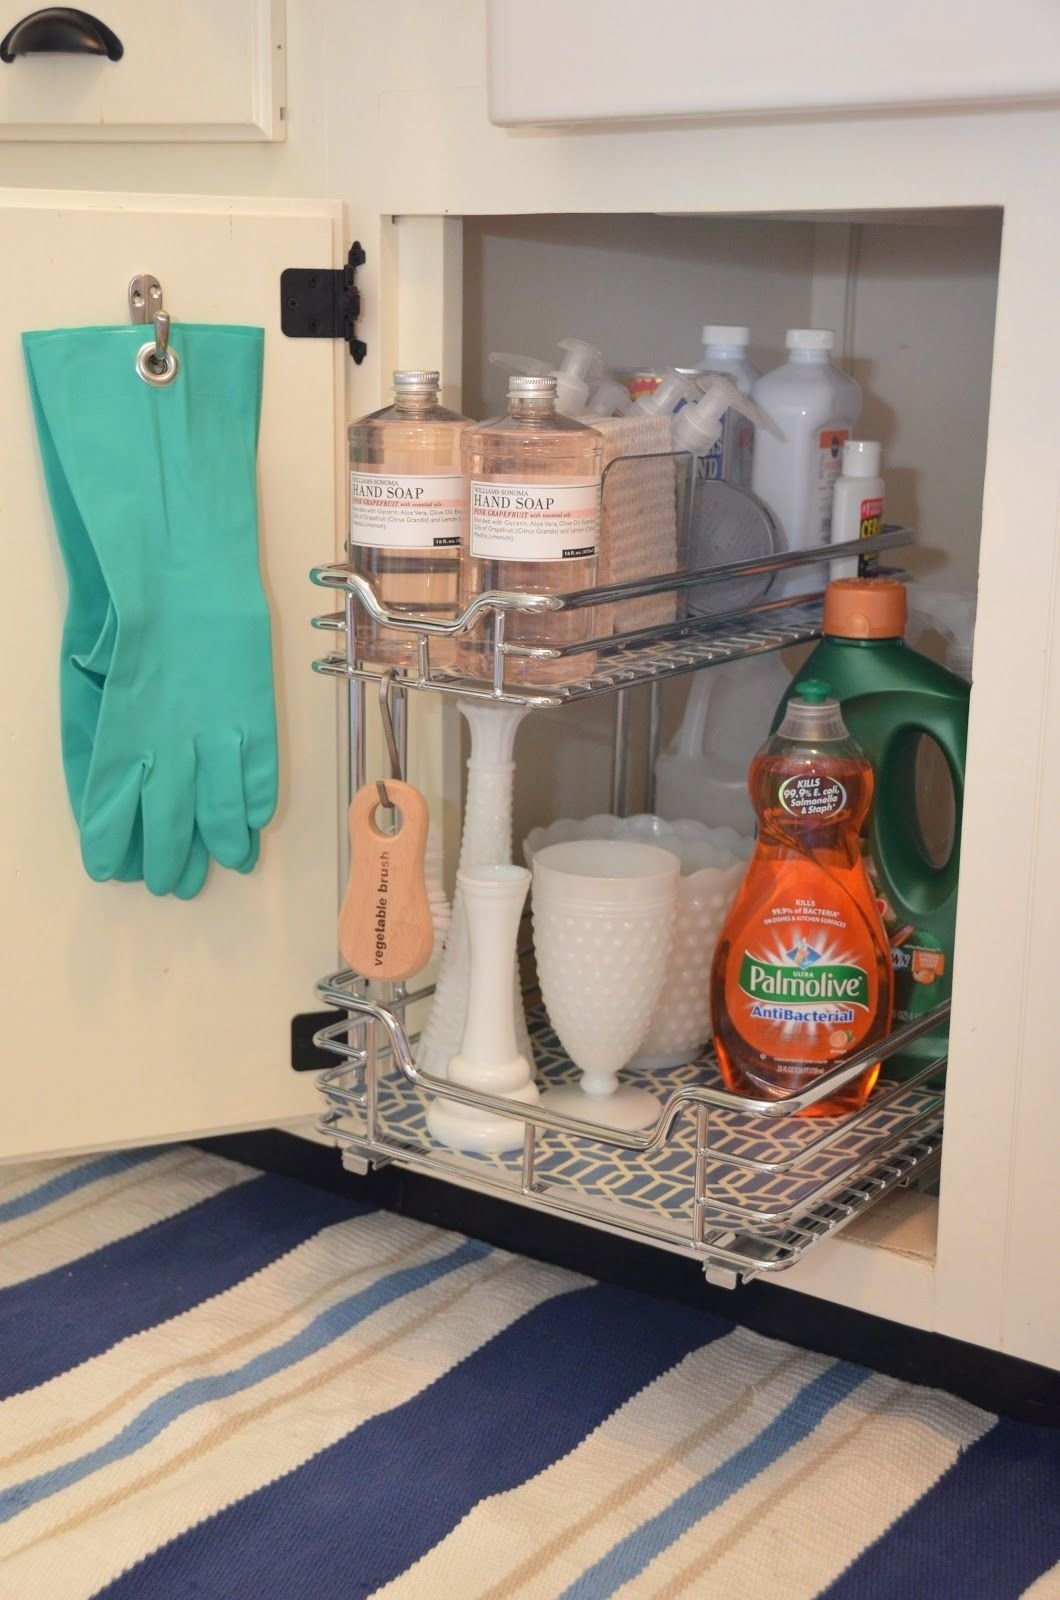 16 renovations under your sink that will wow | sinks, storage and iron